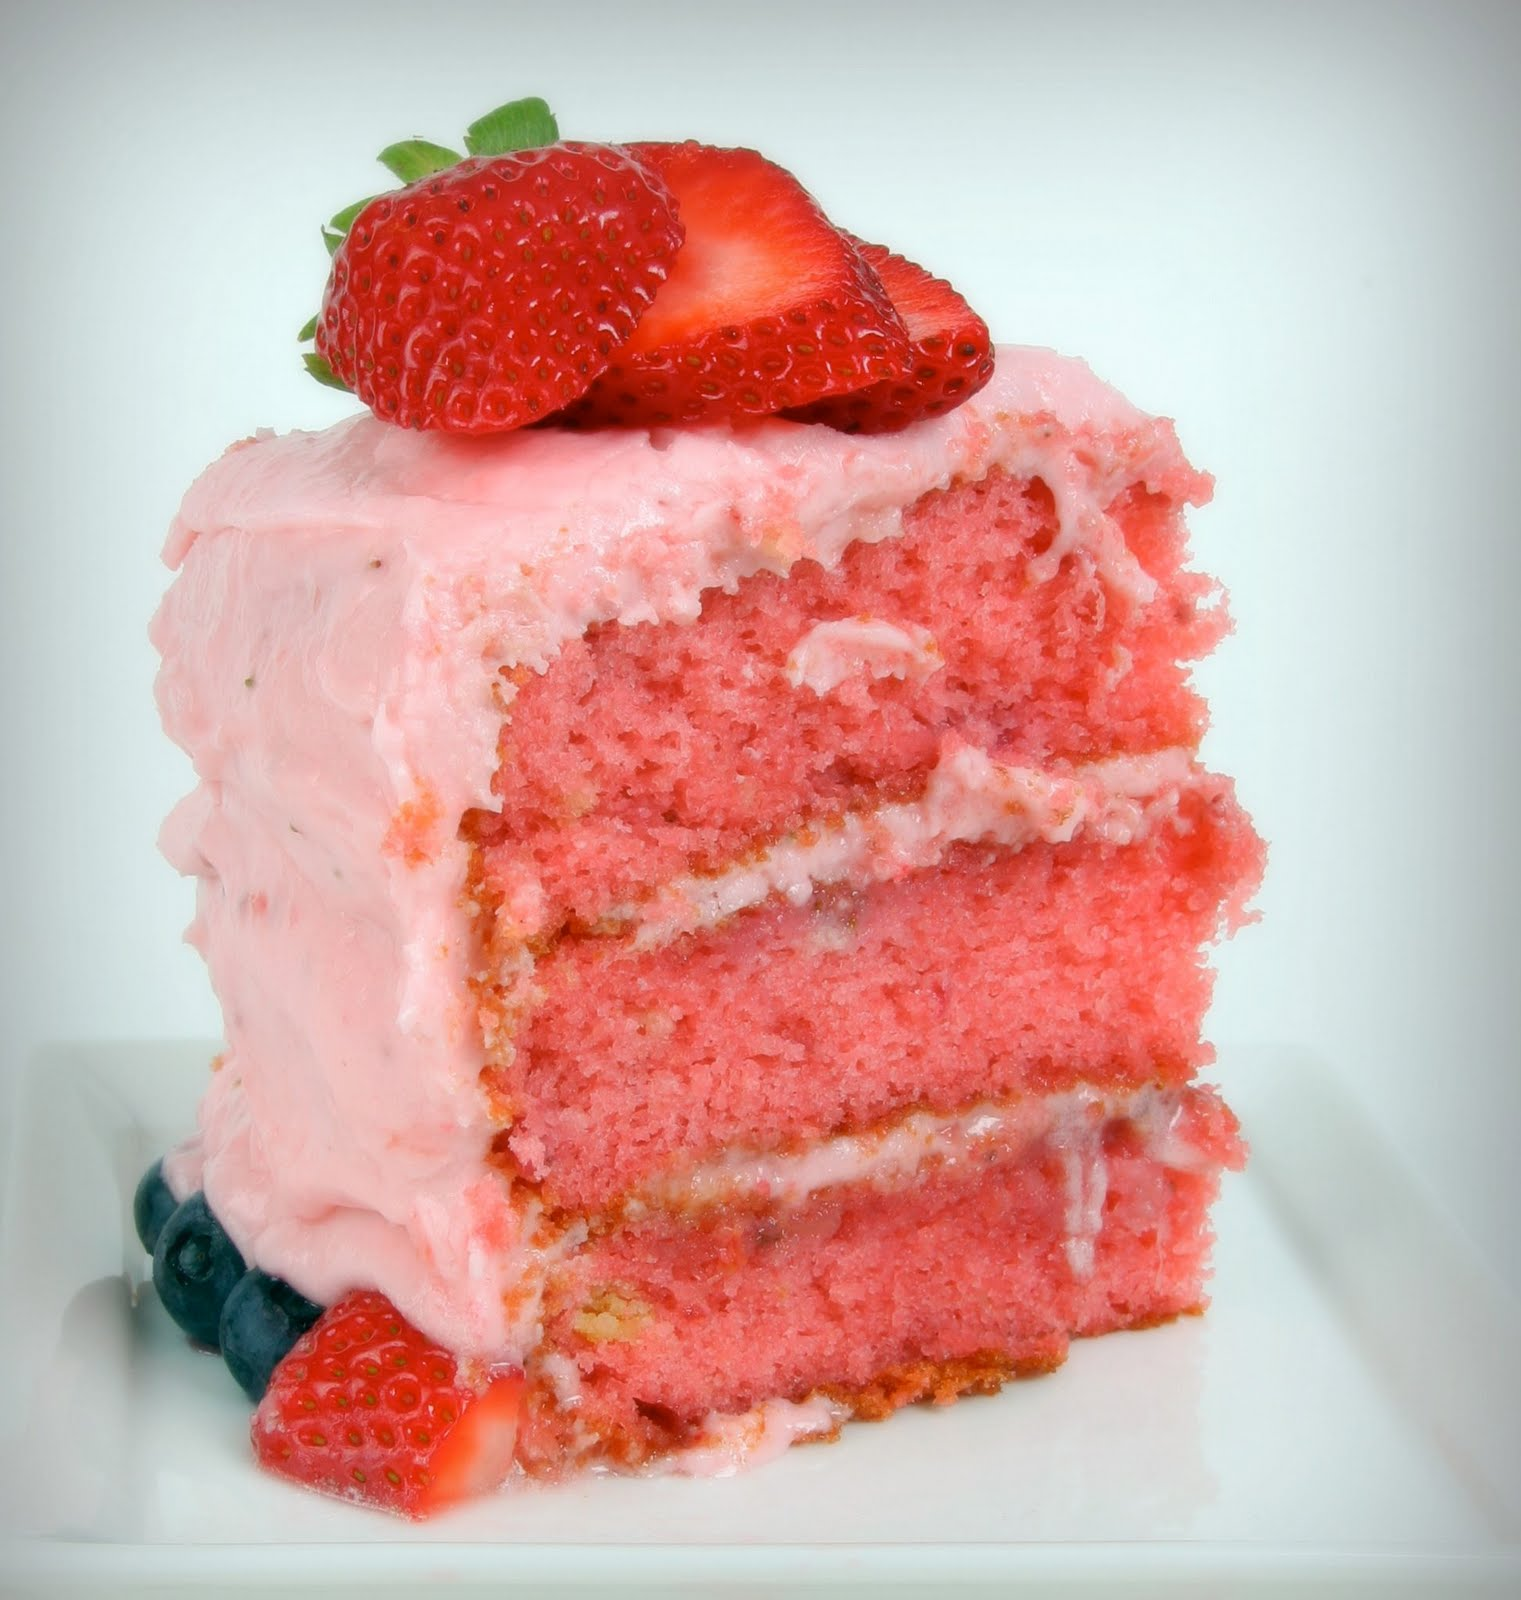 Best Cake For Strawberry Frosting